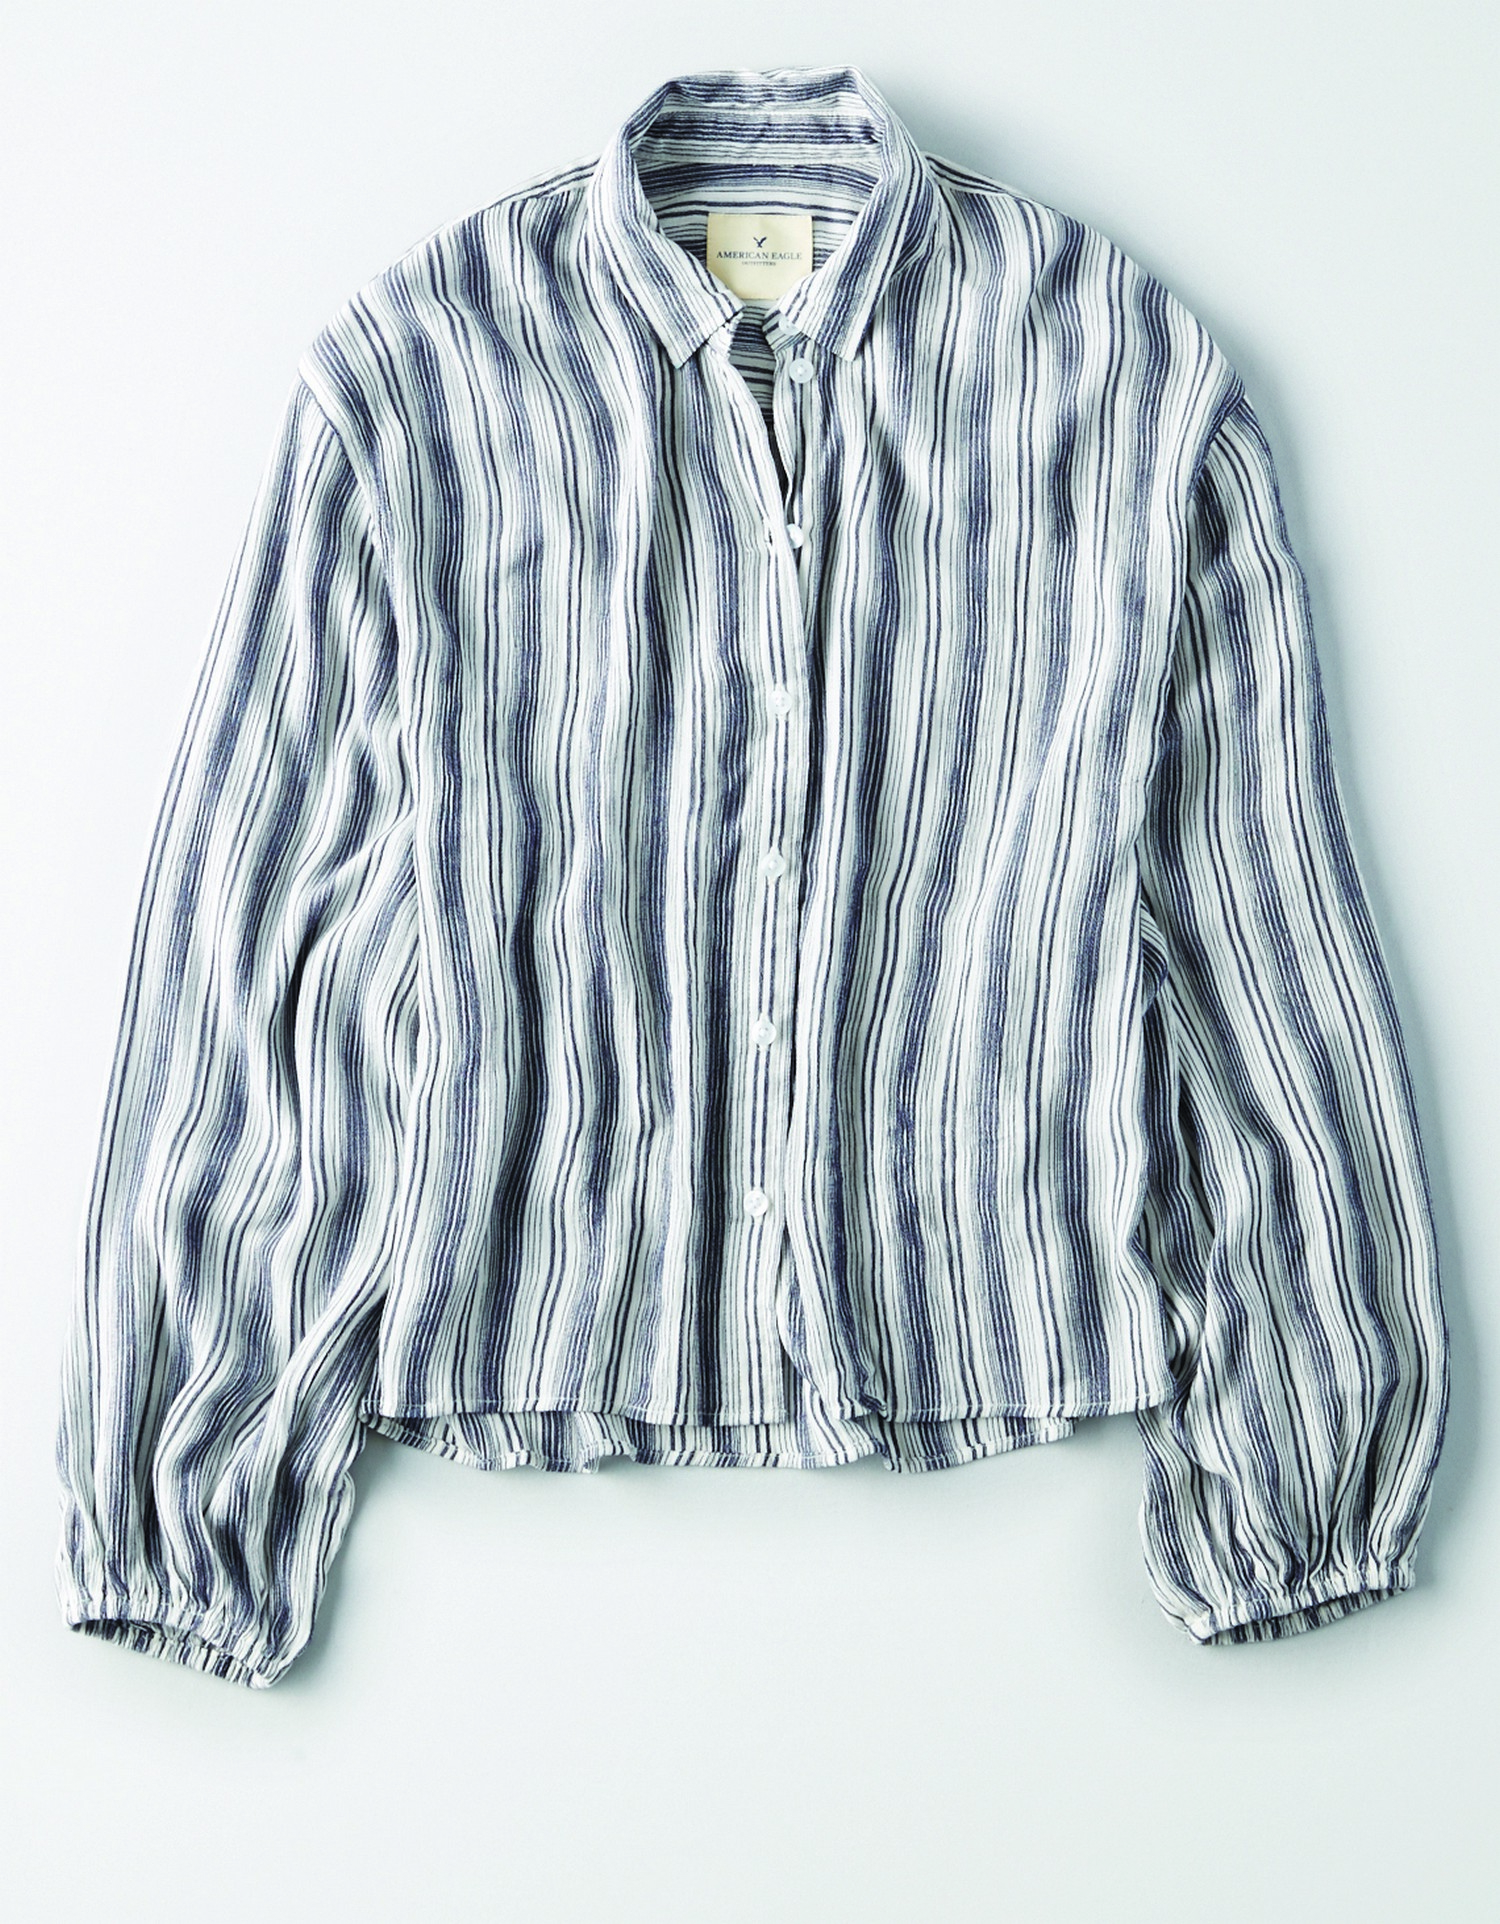 AE - W - Apparel - PUFF SLEEVE STRIPED BUTTONDOWN - Blue and white vertical stripes - White buttons - Loose and slouchy button down BG *Tracked